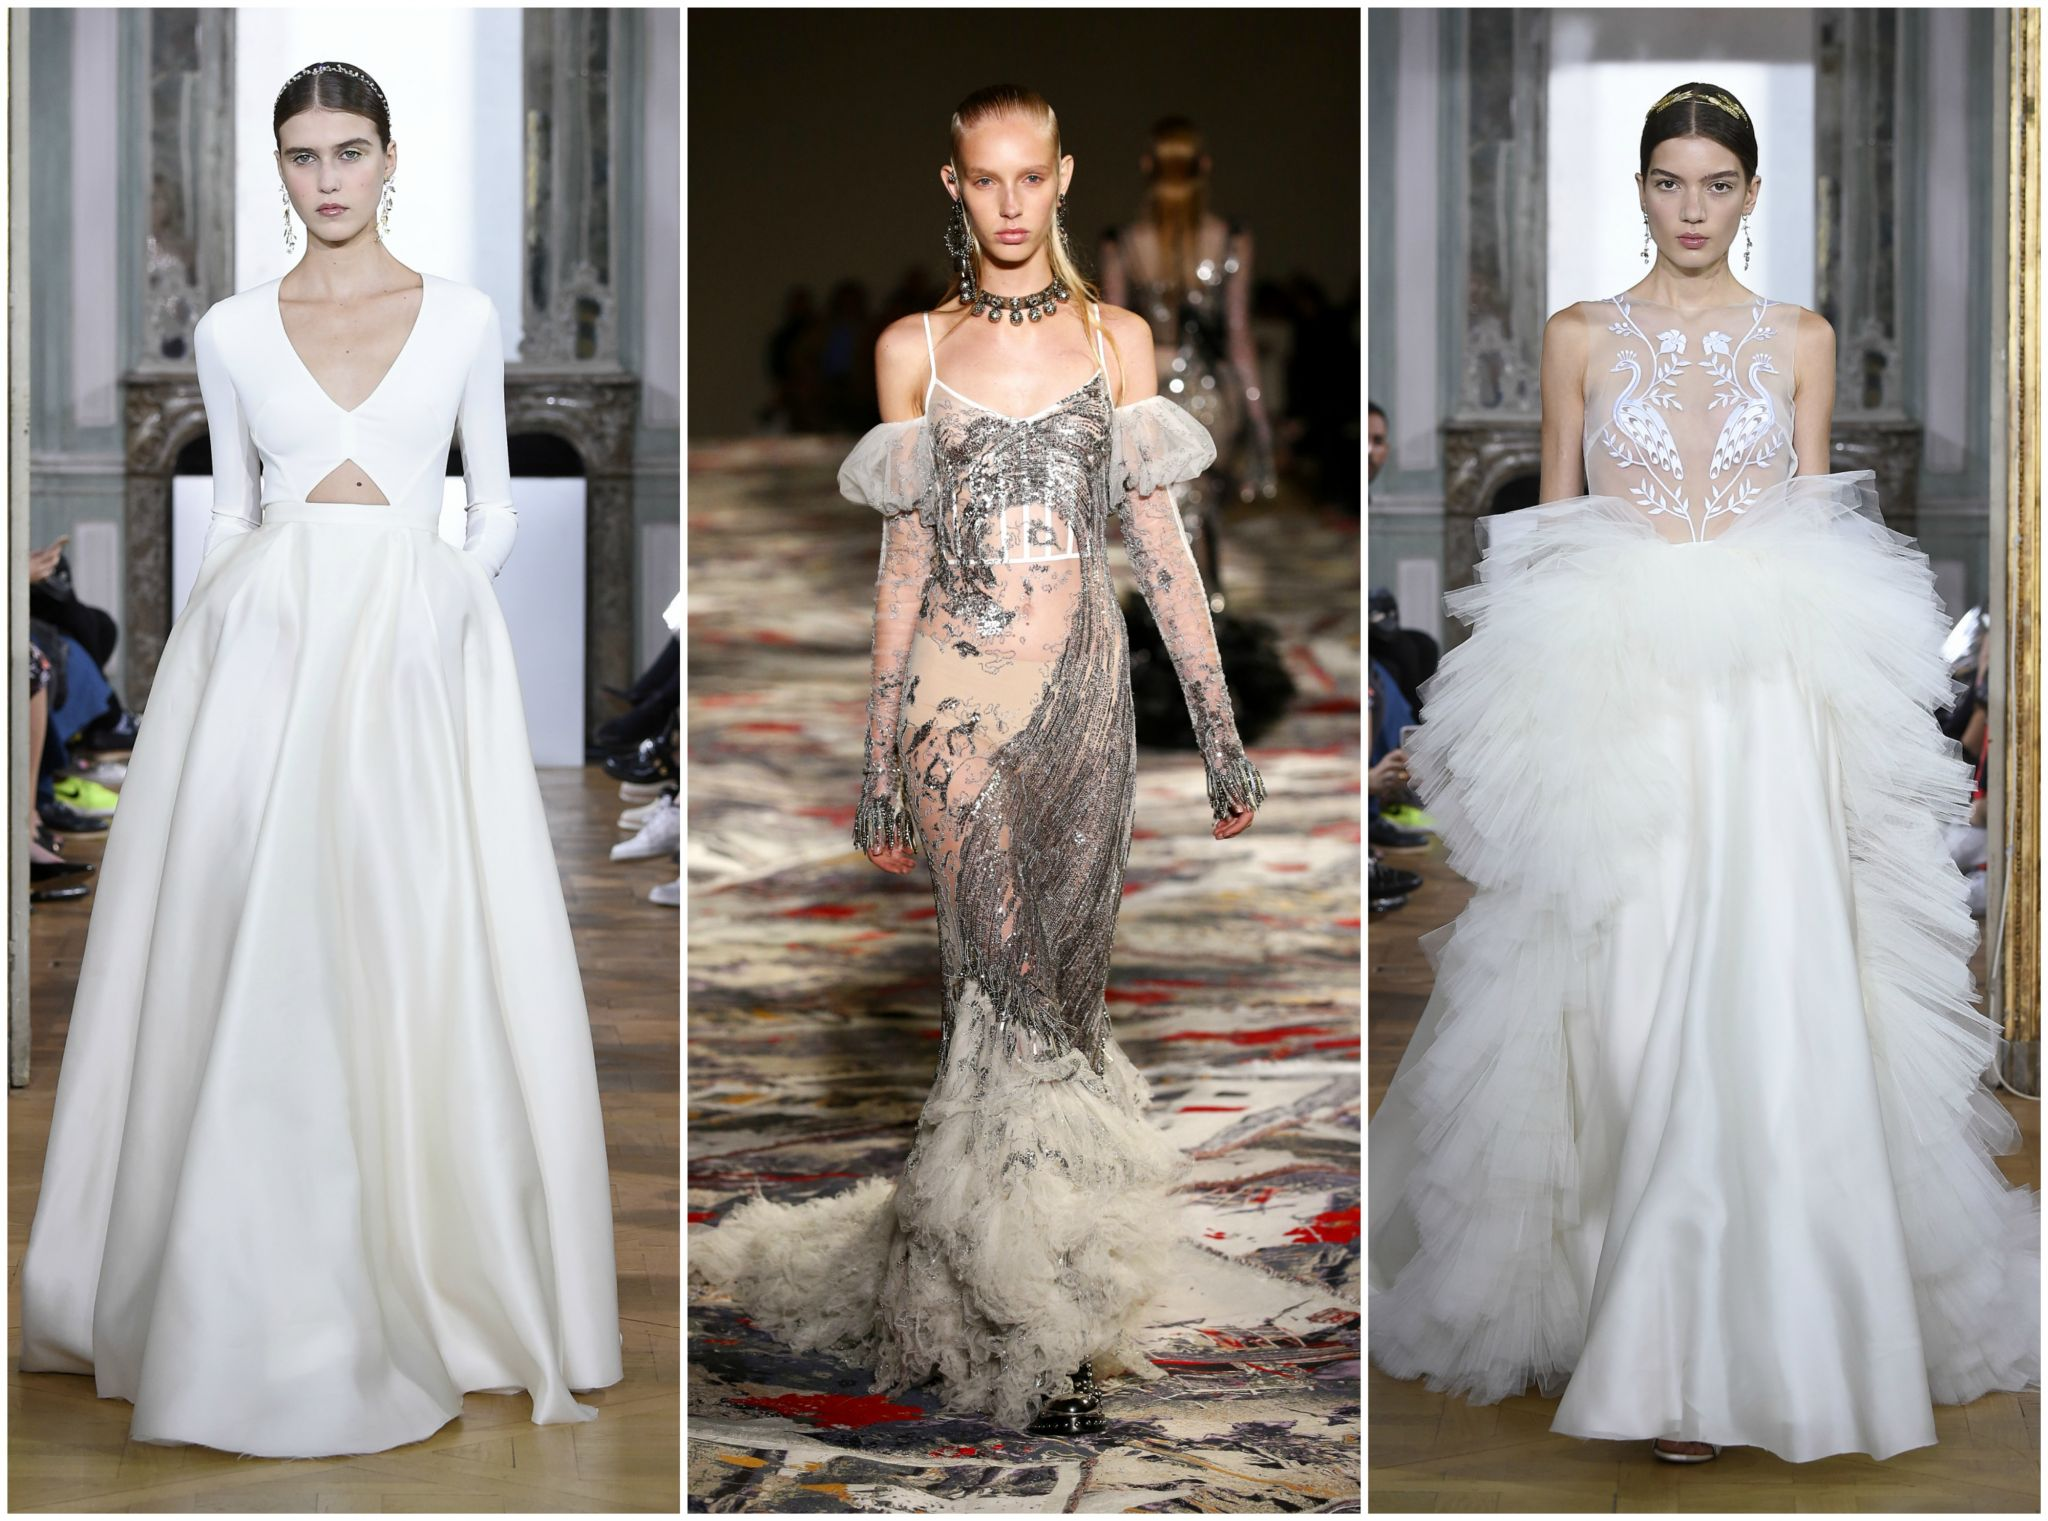 Heart Stopping Bridal Looks From The Paris Runway